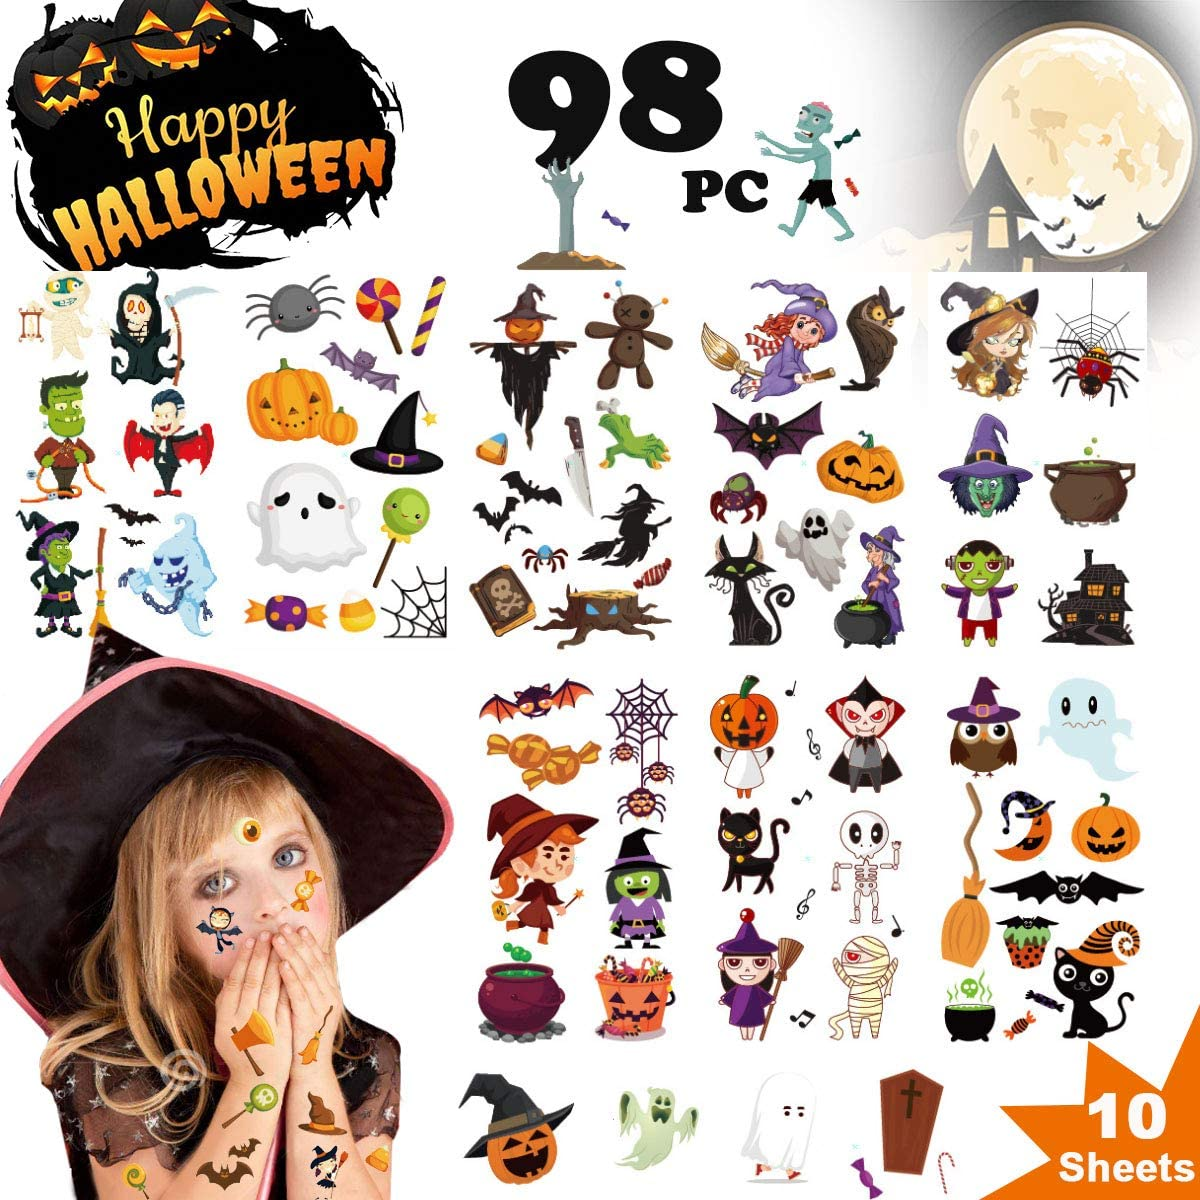 Halloween Tattoos for Kids, Halloween Temporary Tattoos with Ghost Stickers and Witchs Stickers Waterproof, Party and Gift Decorations